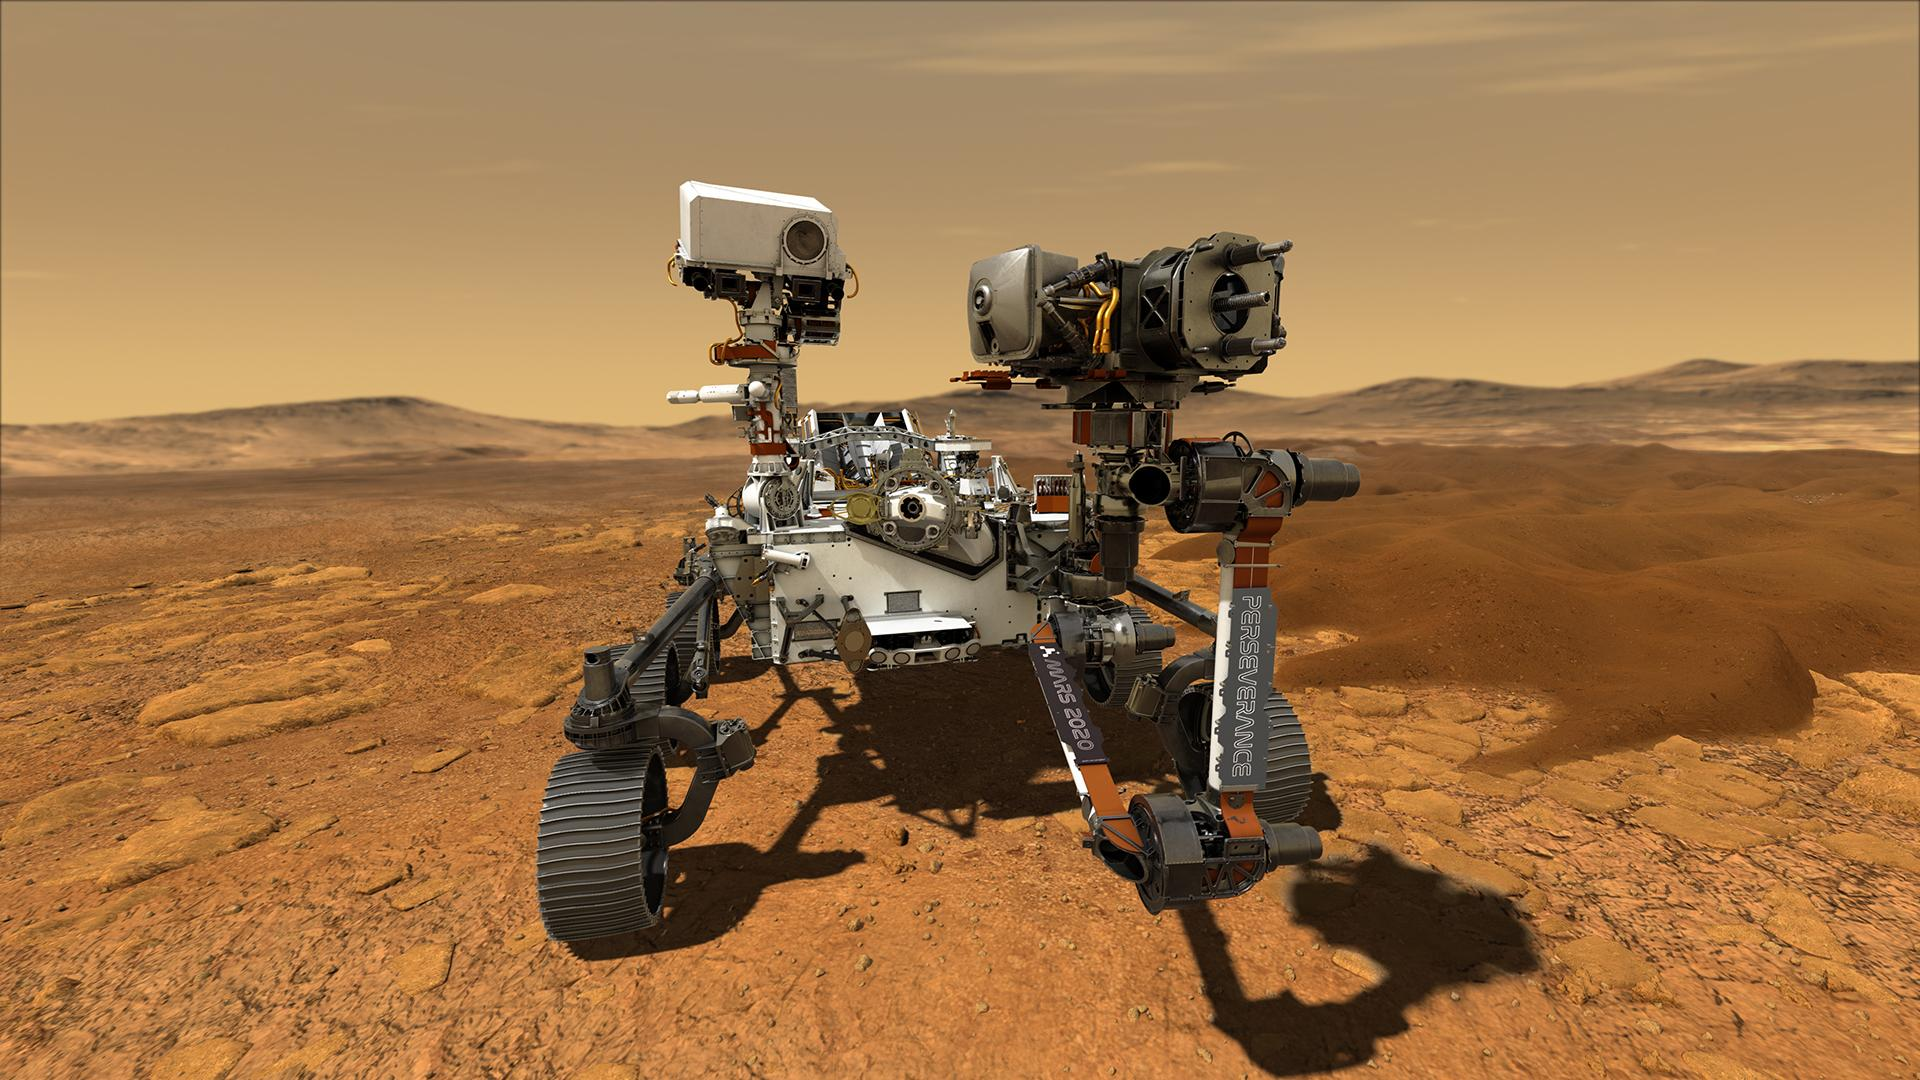 NASA's Perseverance rover nears touchdown on Mars this week after a 300 million mile journey